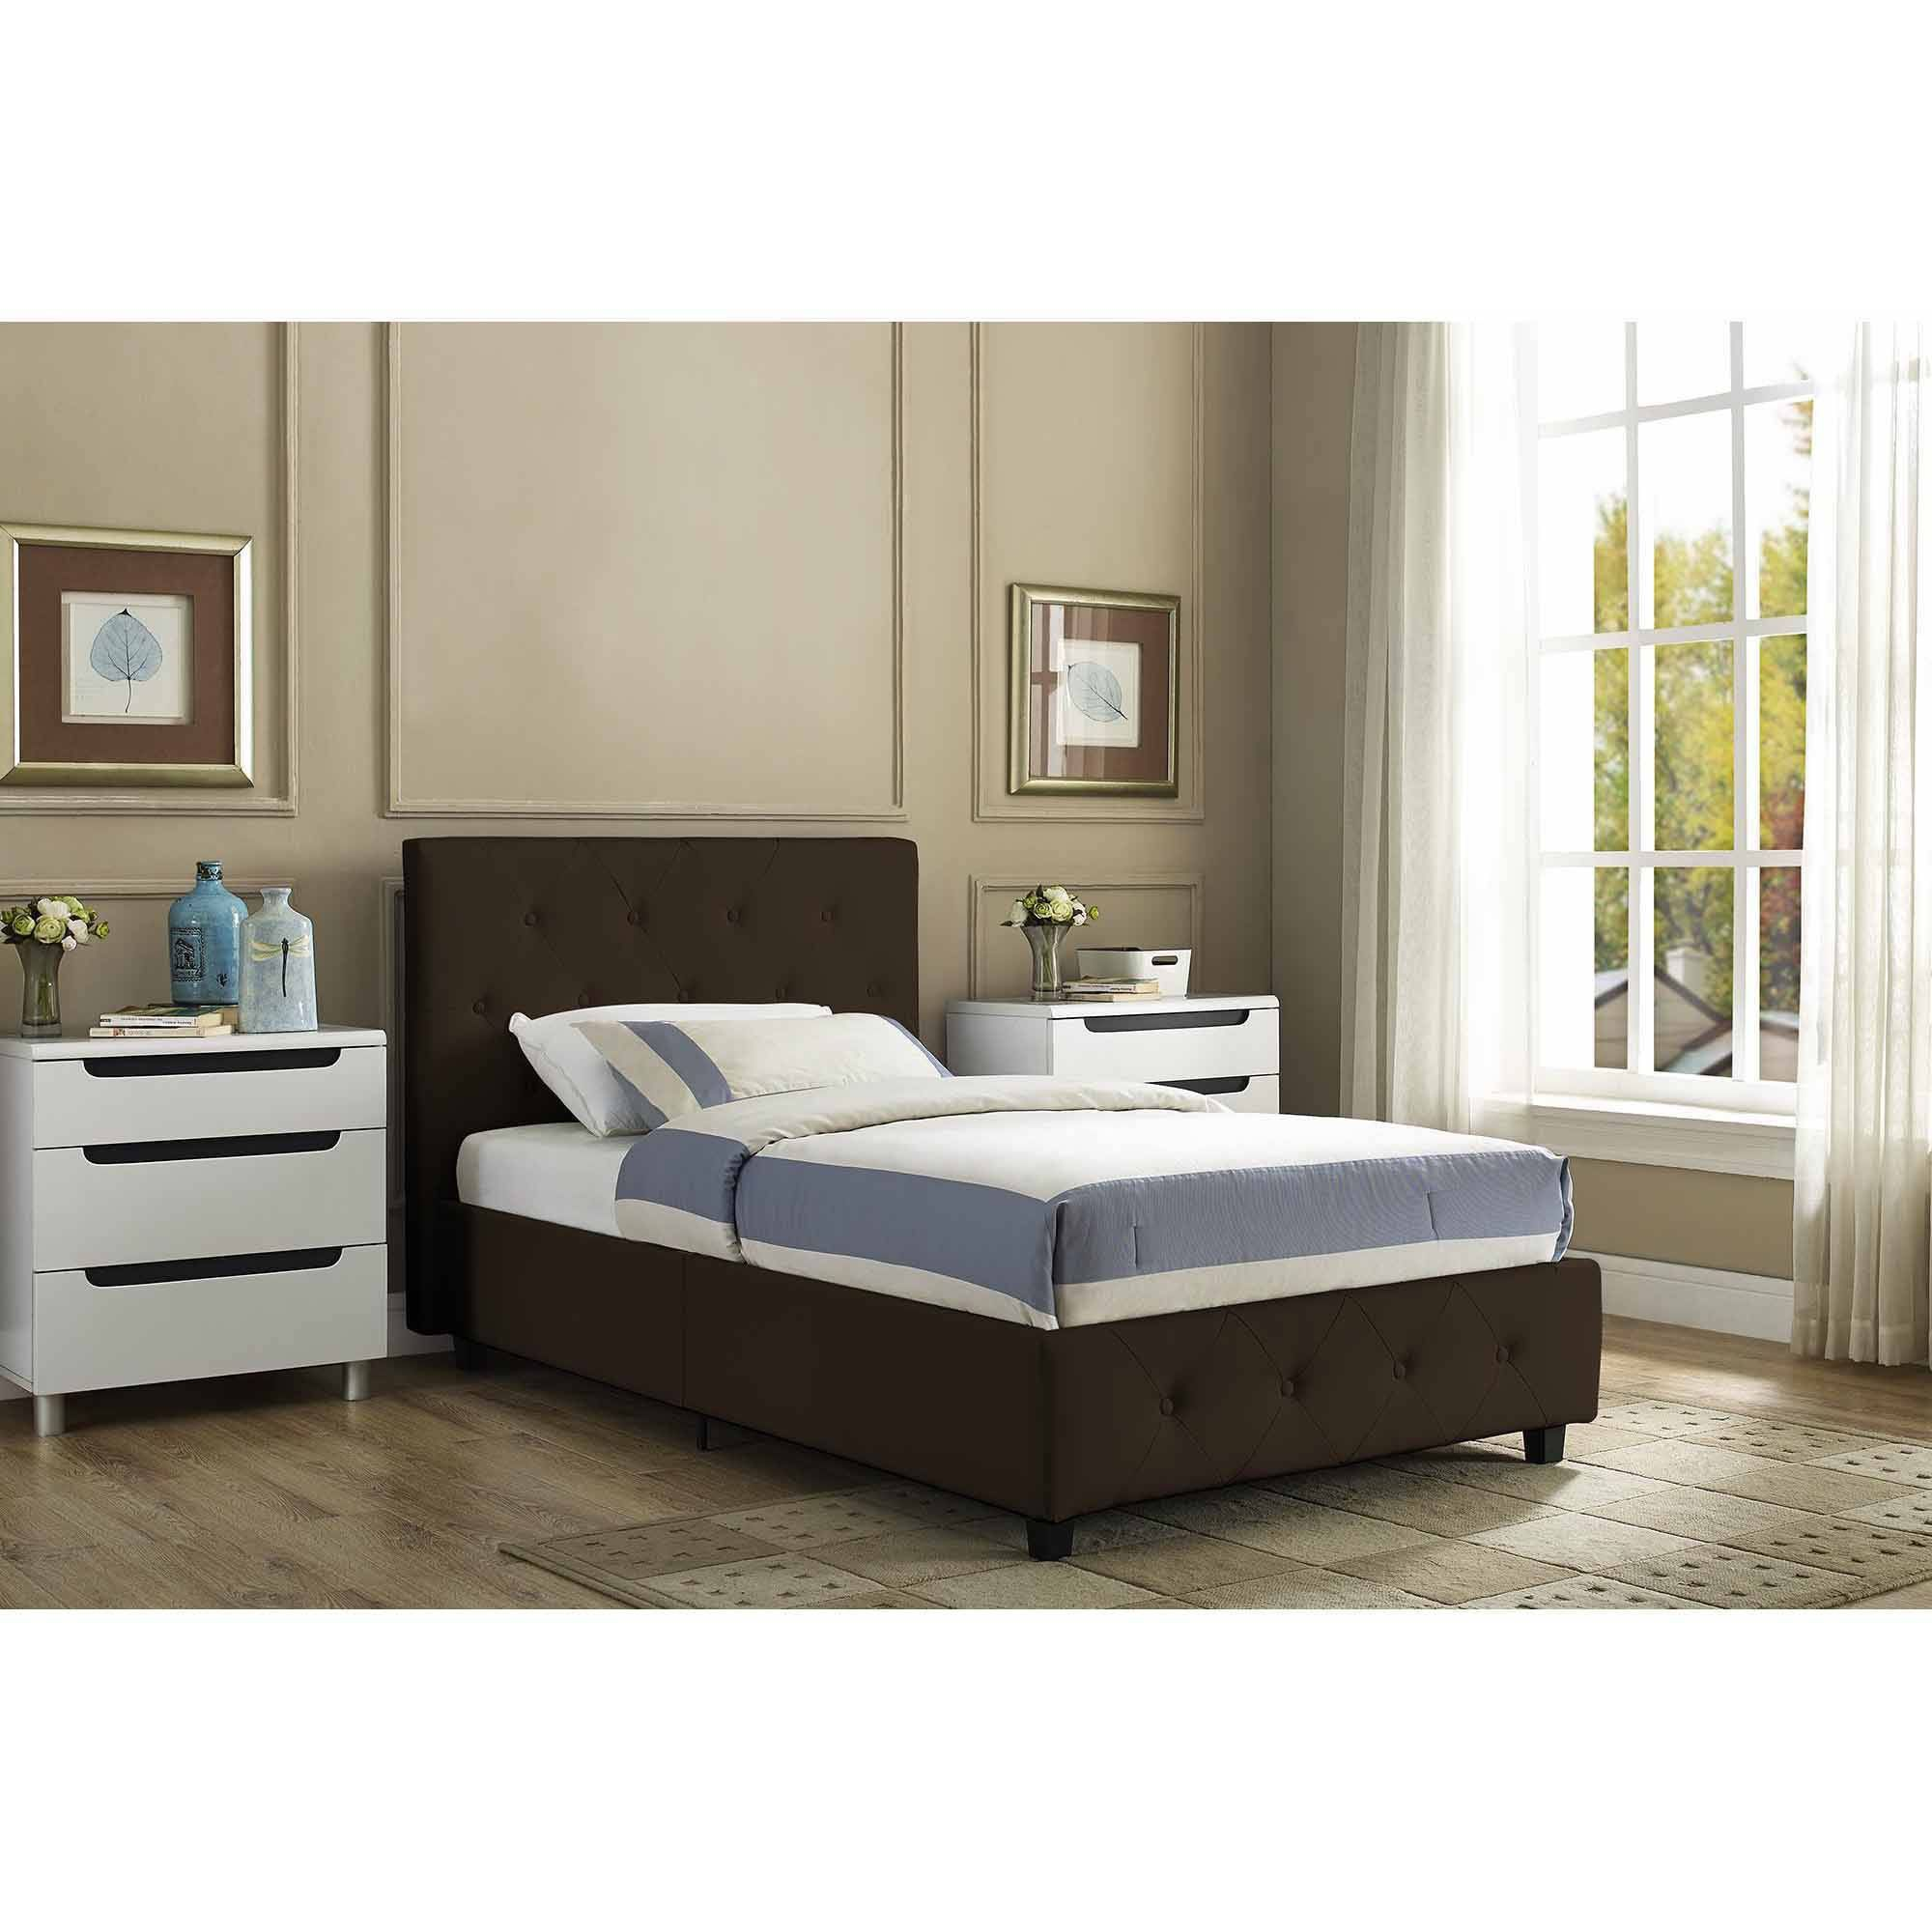 Stratus Queen Upholstered Bed, Black Faux Leather - Walmart.com ...